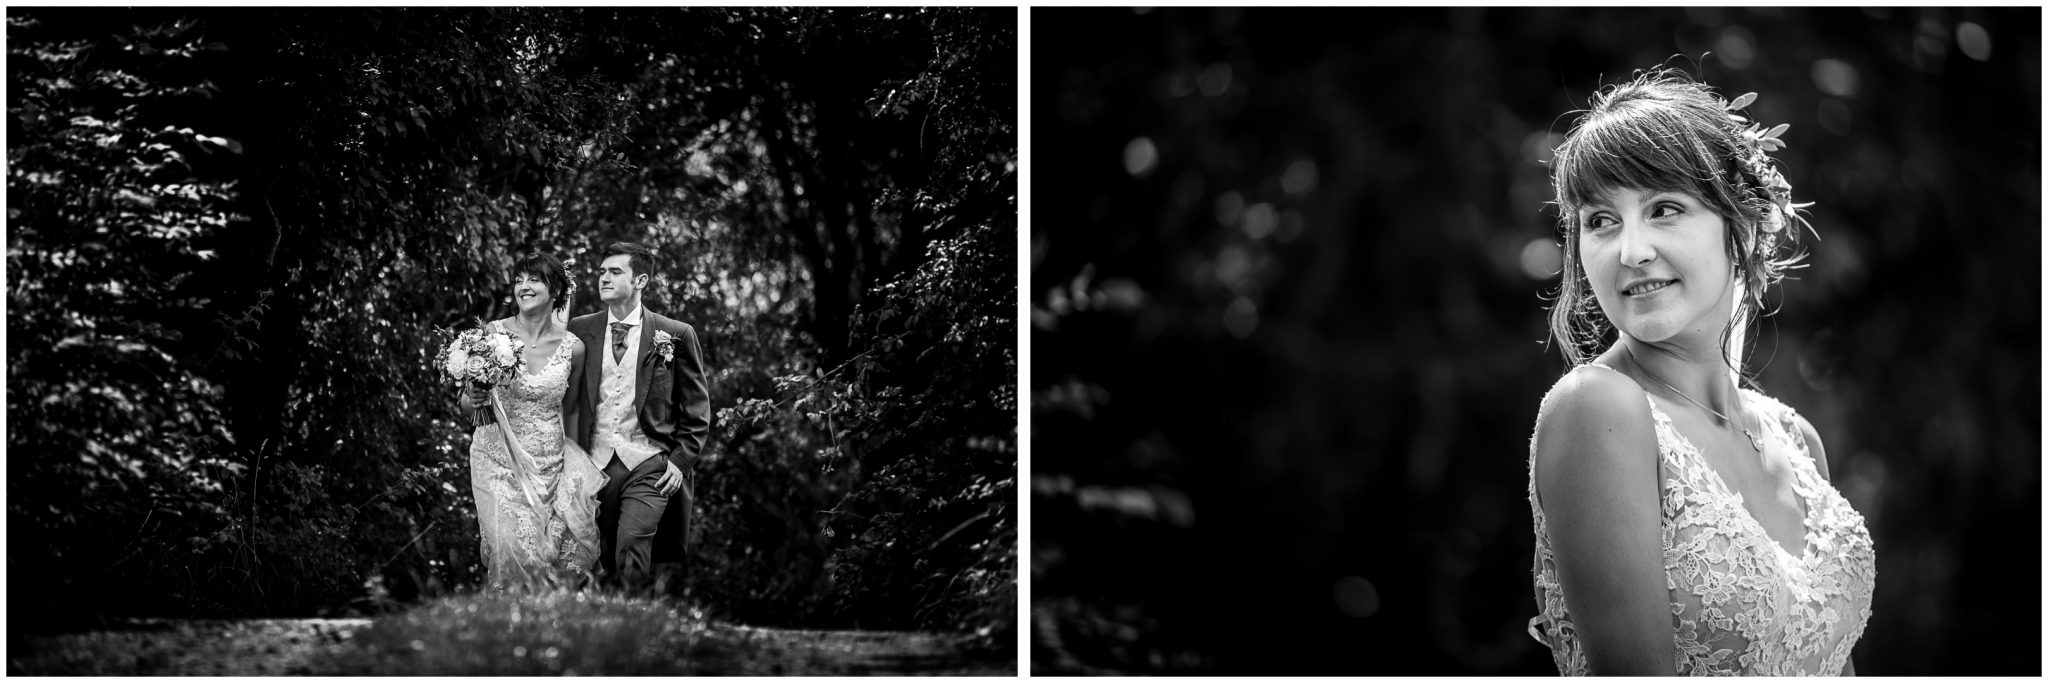 Sopley Mill wedding photography black and white bride portrait